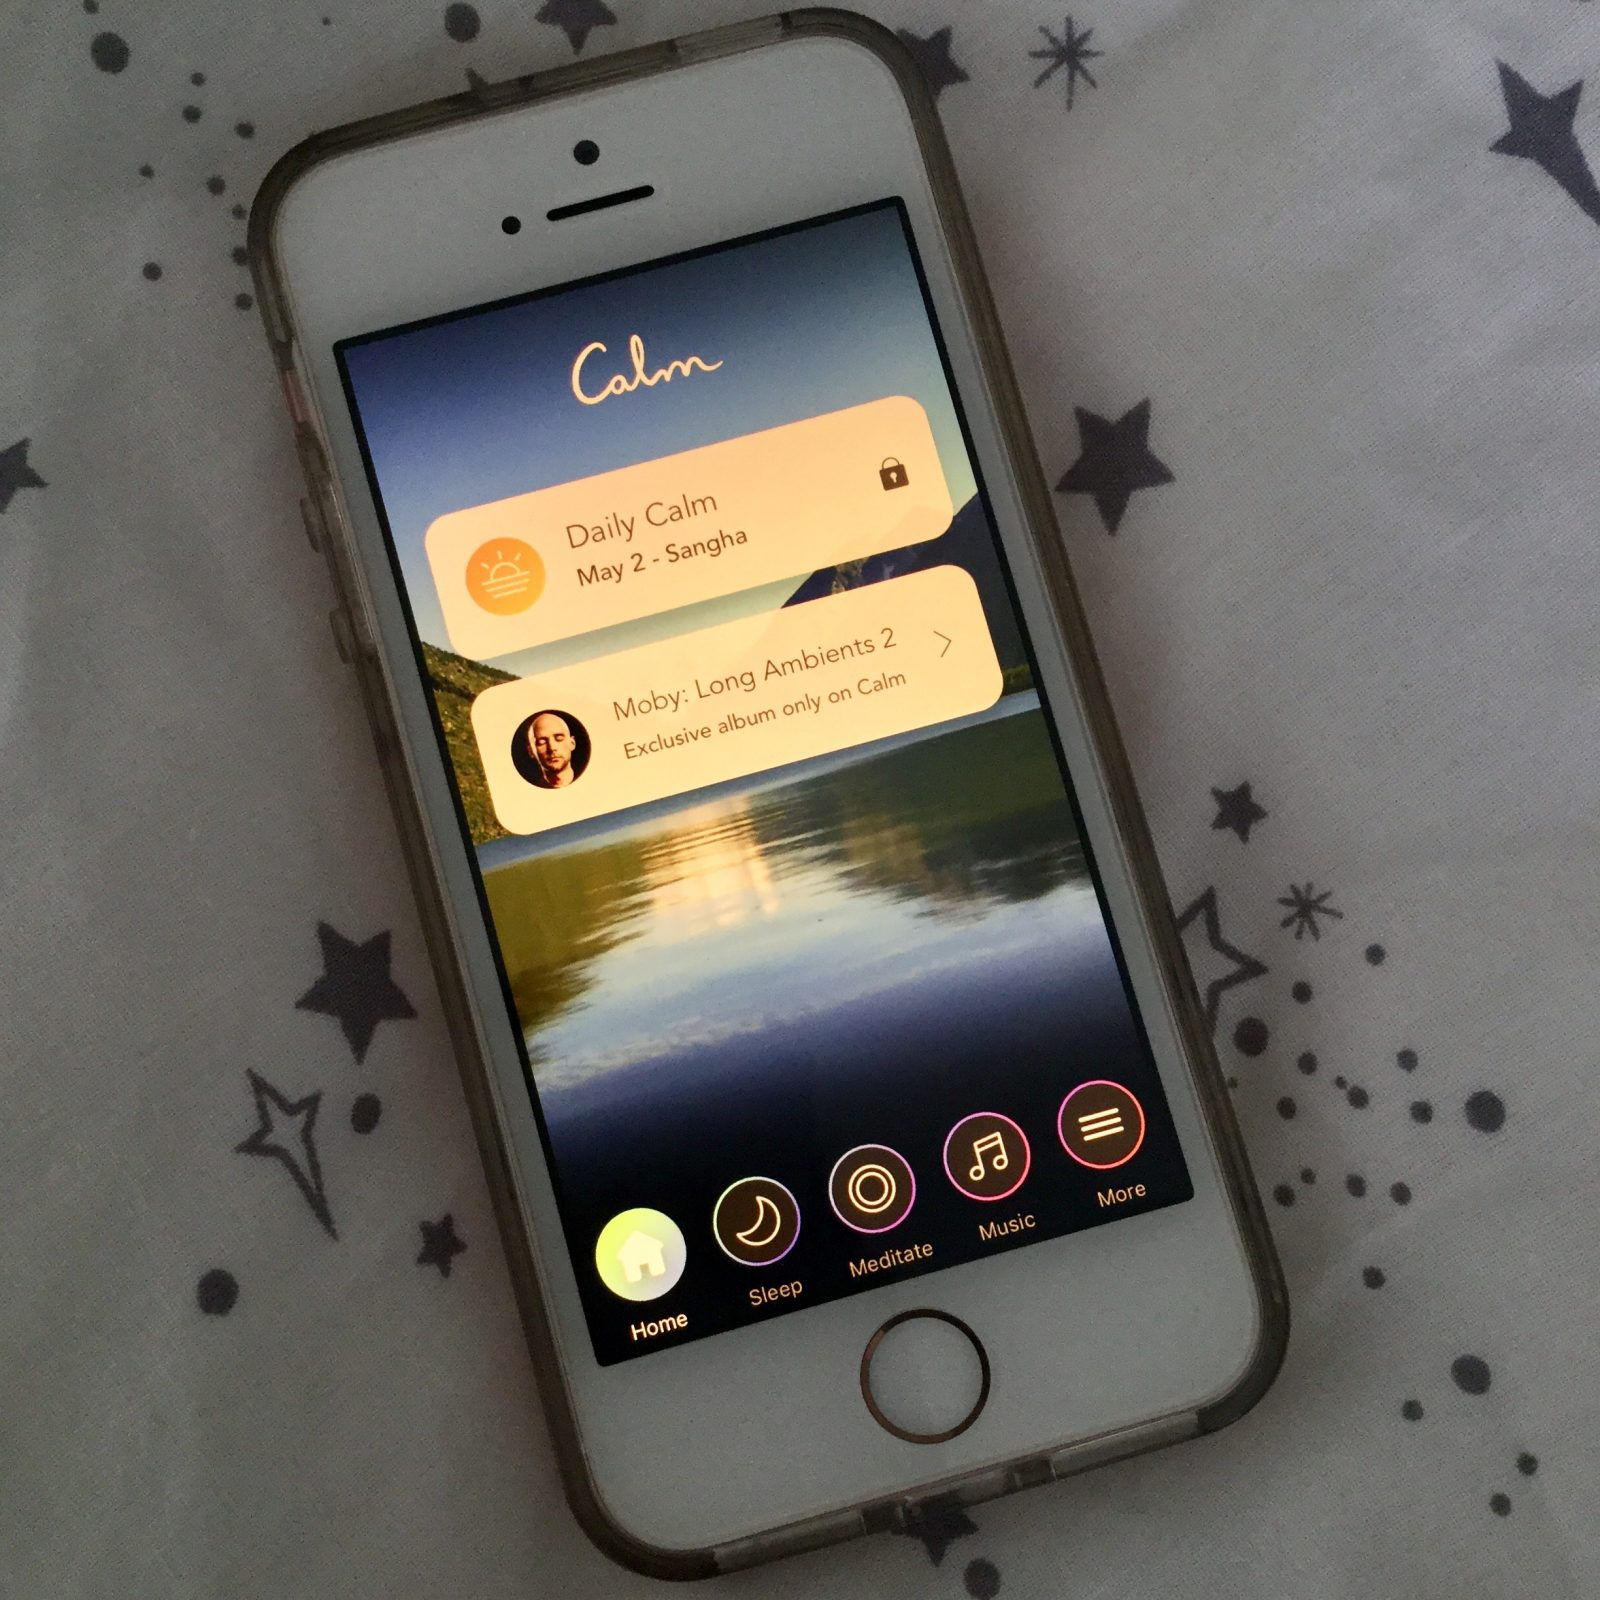 iphone on bedsheets displaying calm app home screen